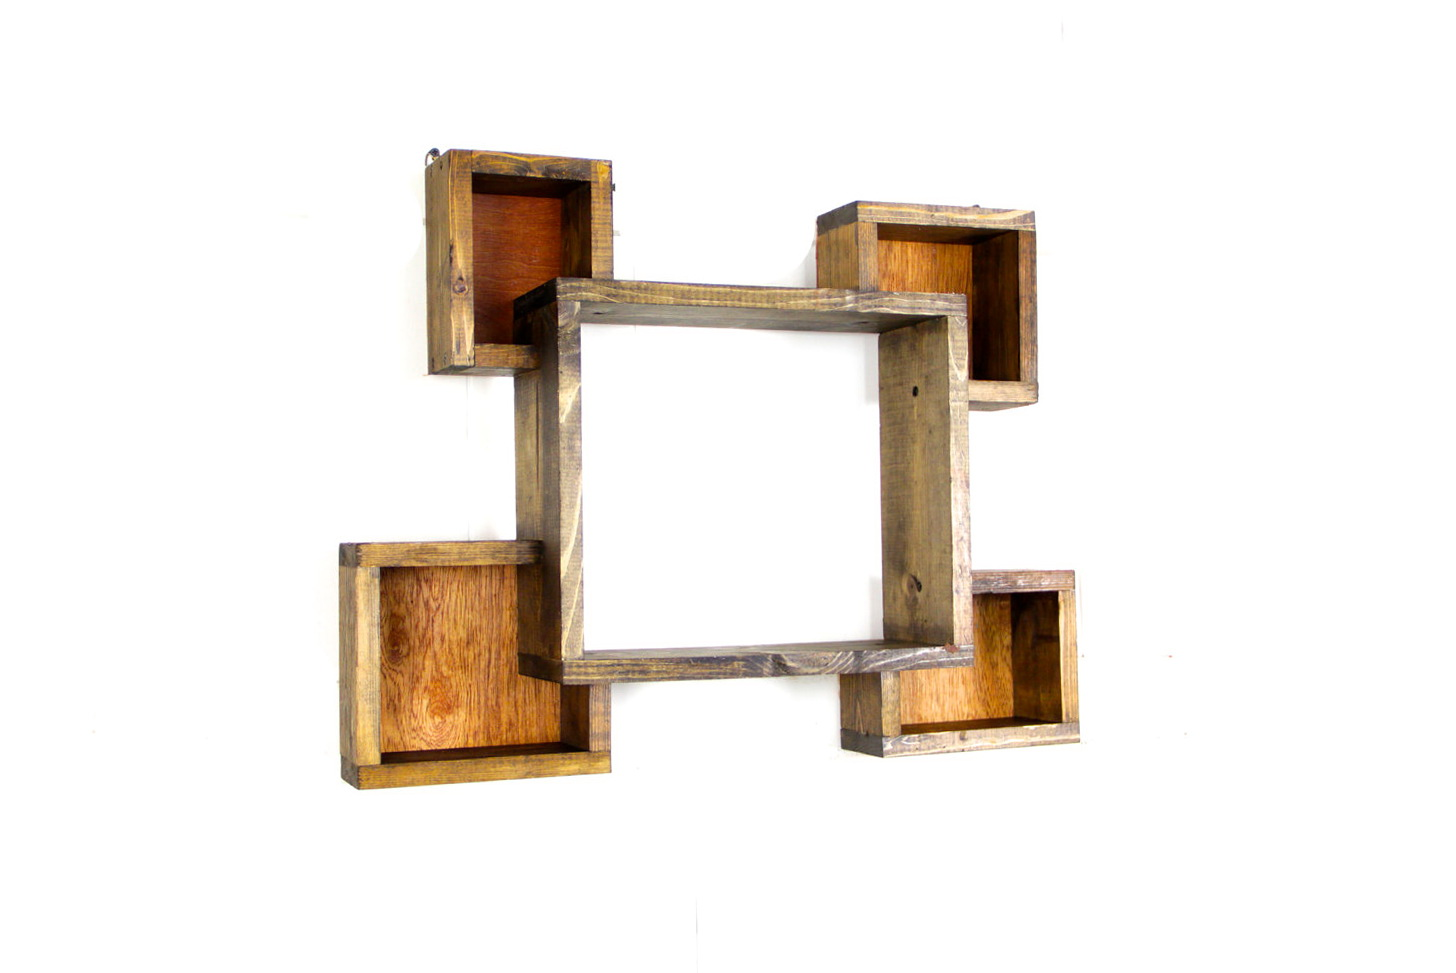 Wooden Square Wall Shelves